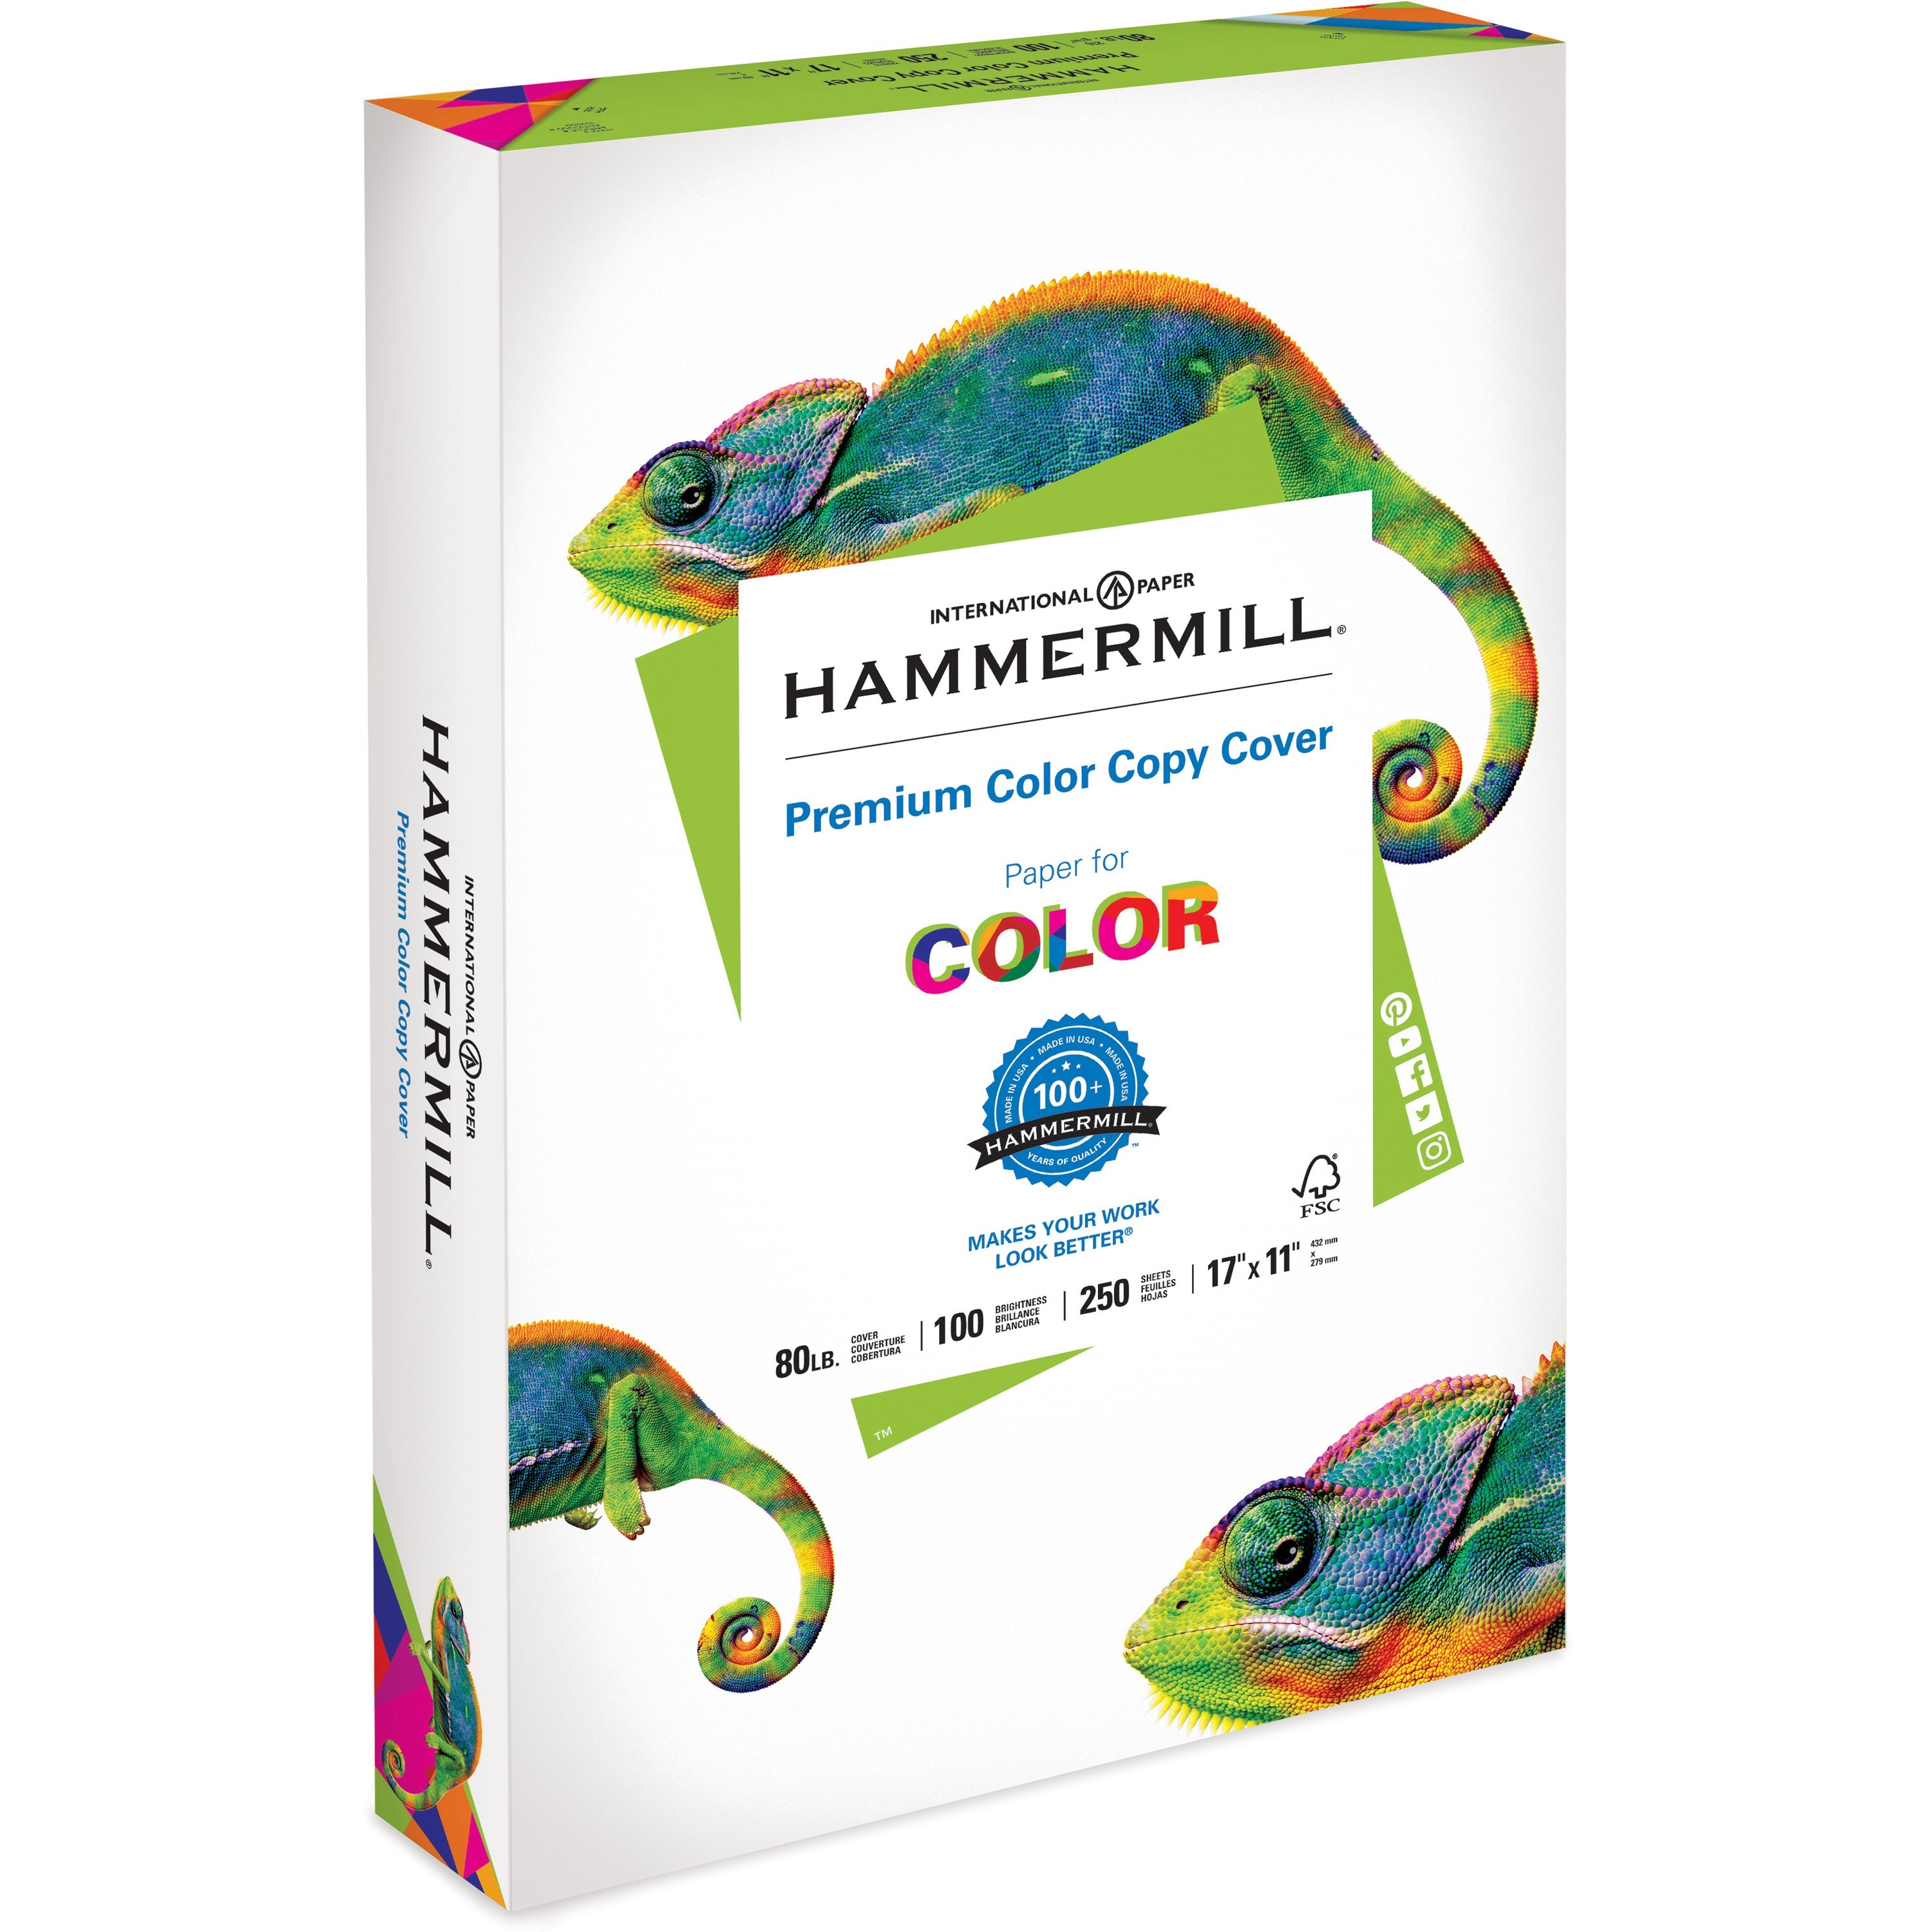 Hammermill, HAM120037, Color Copy Digital Cover Paper, 250 / Pack, White